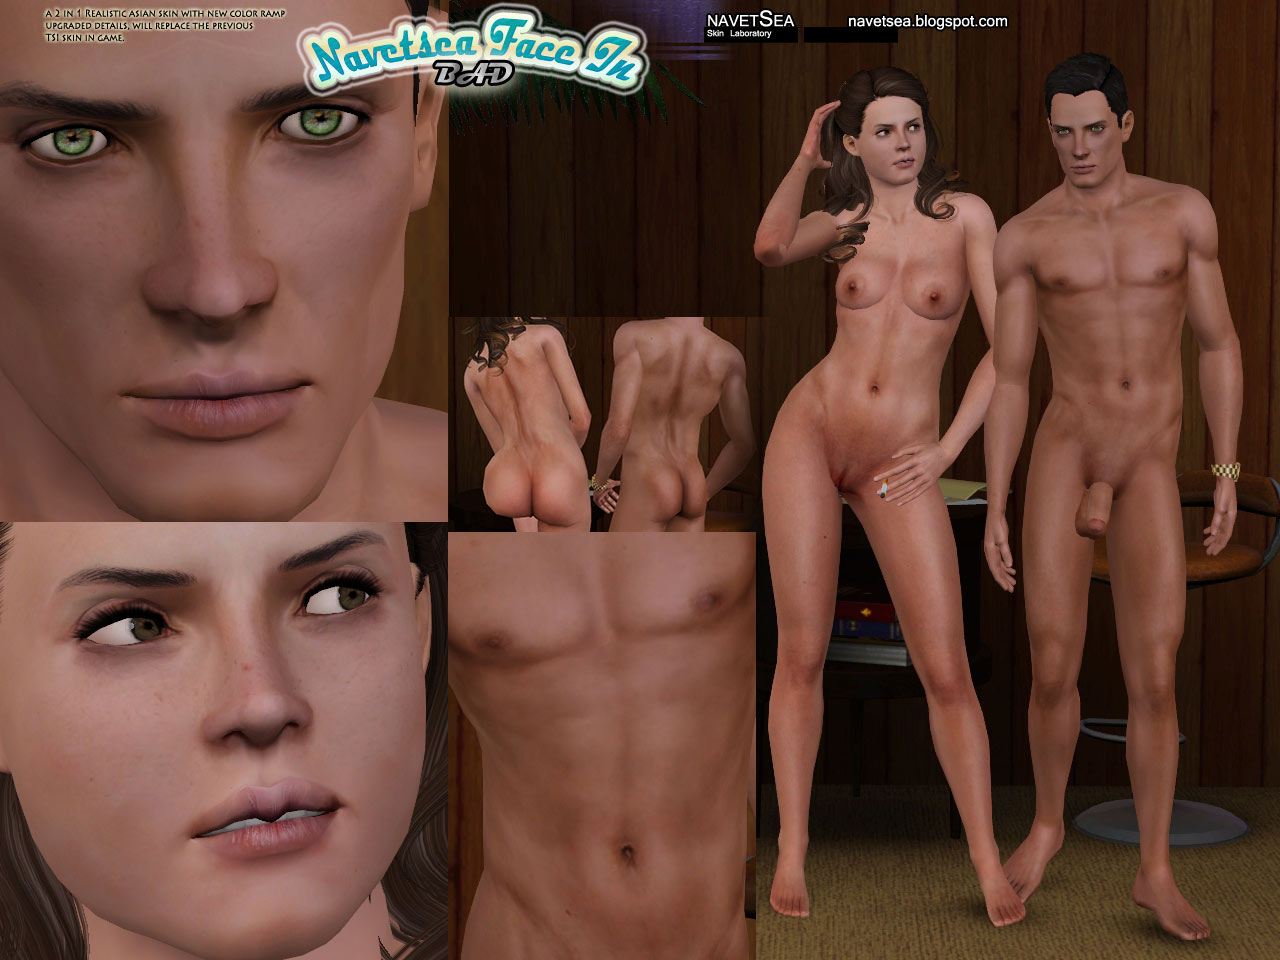 Sims 3 female naked path free downloads nsfw picture